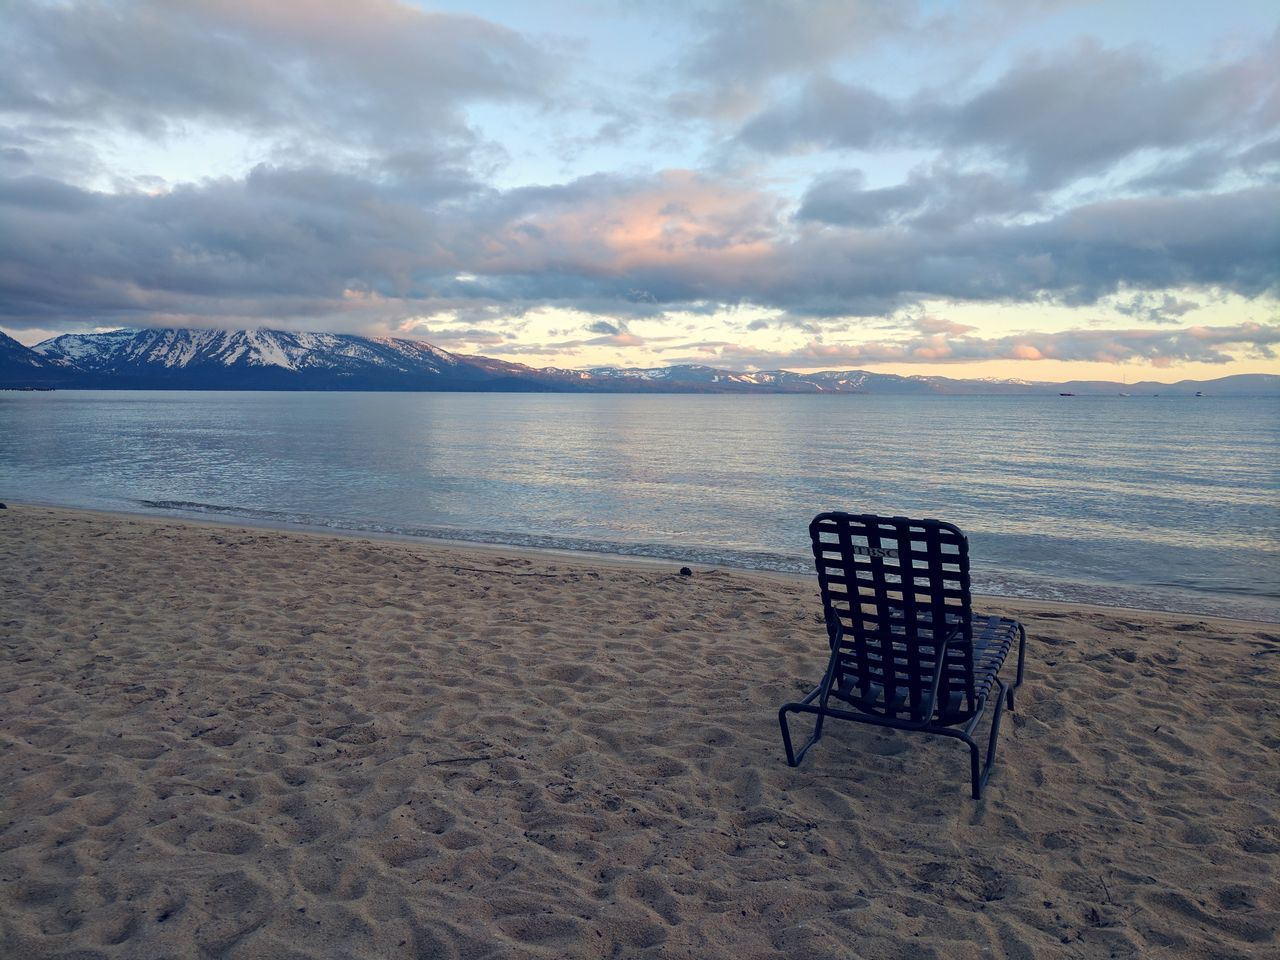 Beach Sand Water Horizon Over Water Tranquility Nature Cloud - Sky Chair No People Water's Edge Outdoors Summer Beauty In Nature Sunset Scenics Vacations Landscape Lake Alpine Lake Sierra Nevada